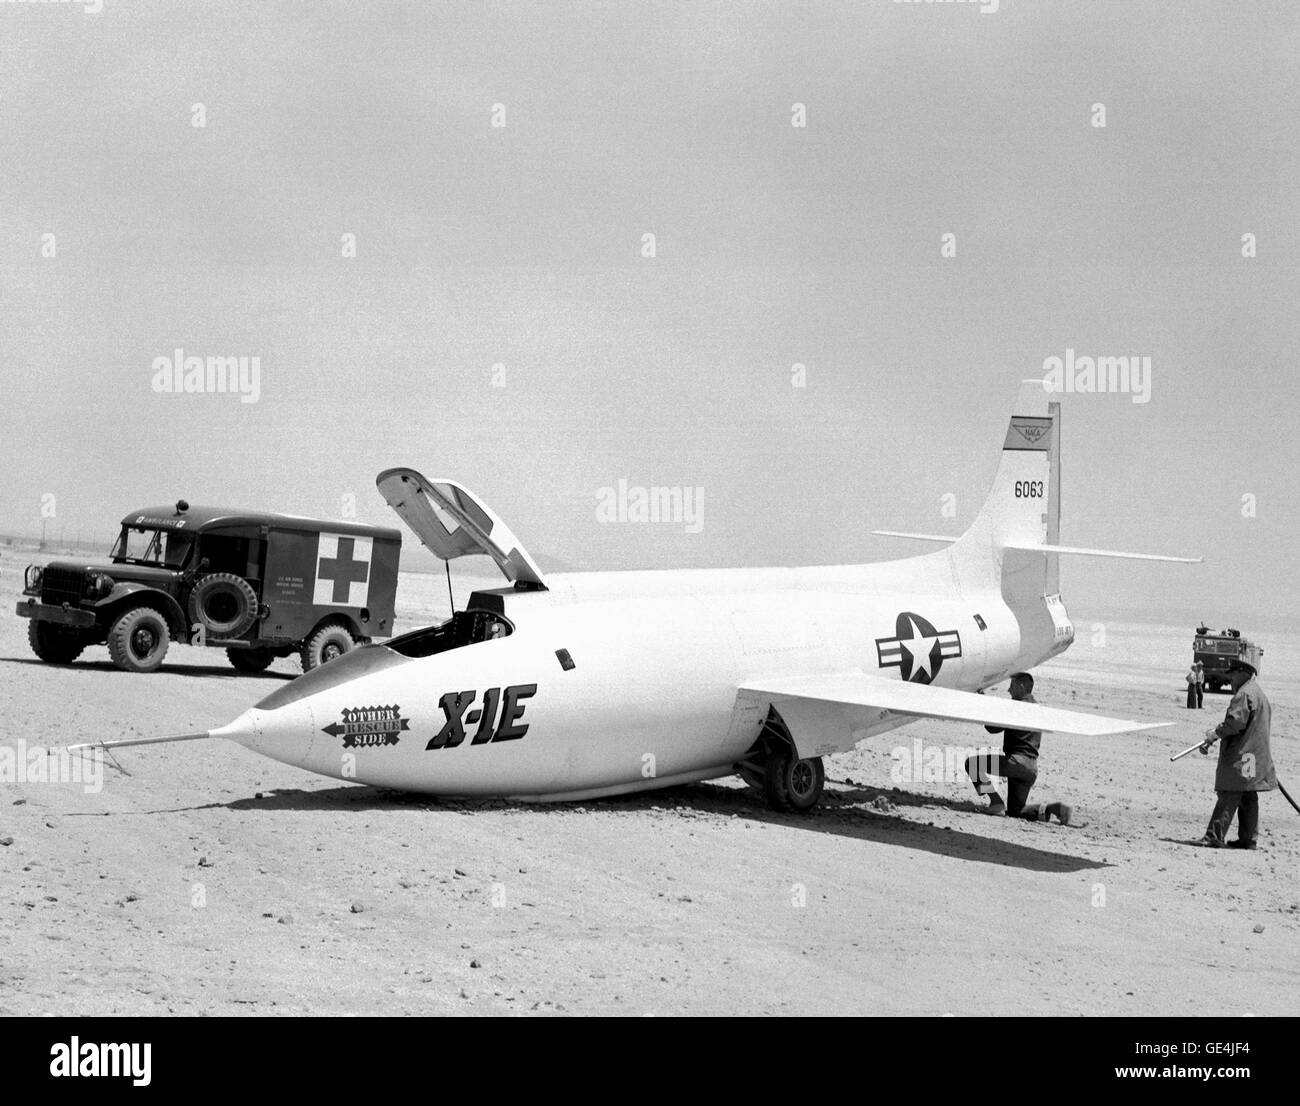 (June 18, 1956) This photo was taken June 18, 1956 on Rogers Dry Lake bed after Flight 7 of the Bell Aircraft Corporation - Stock Image